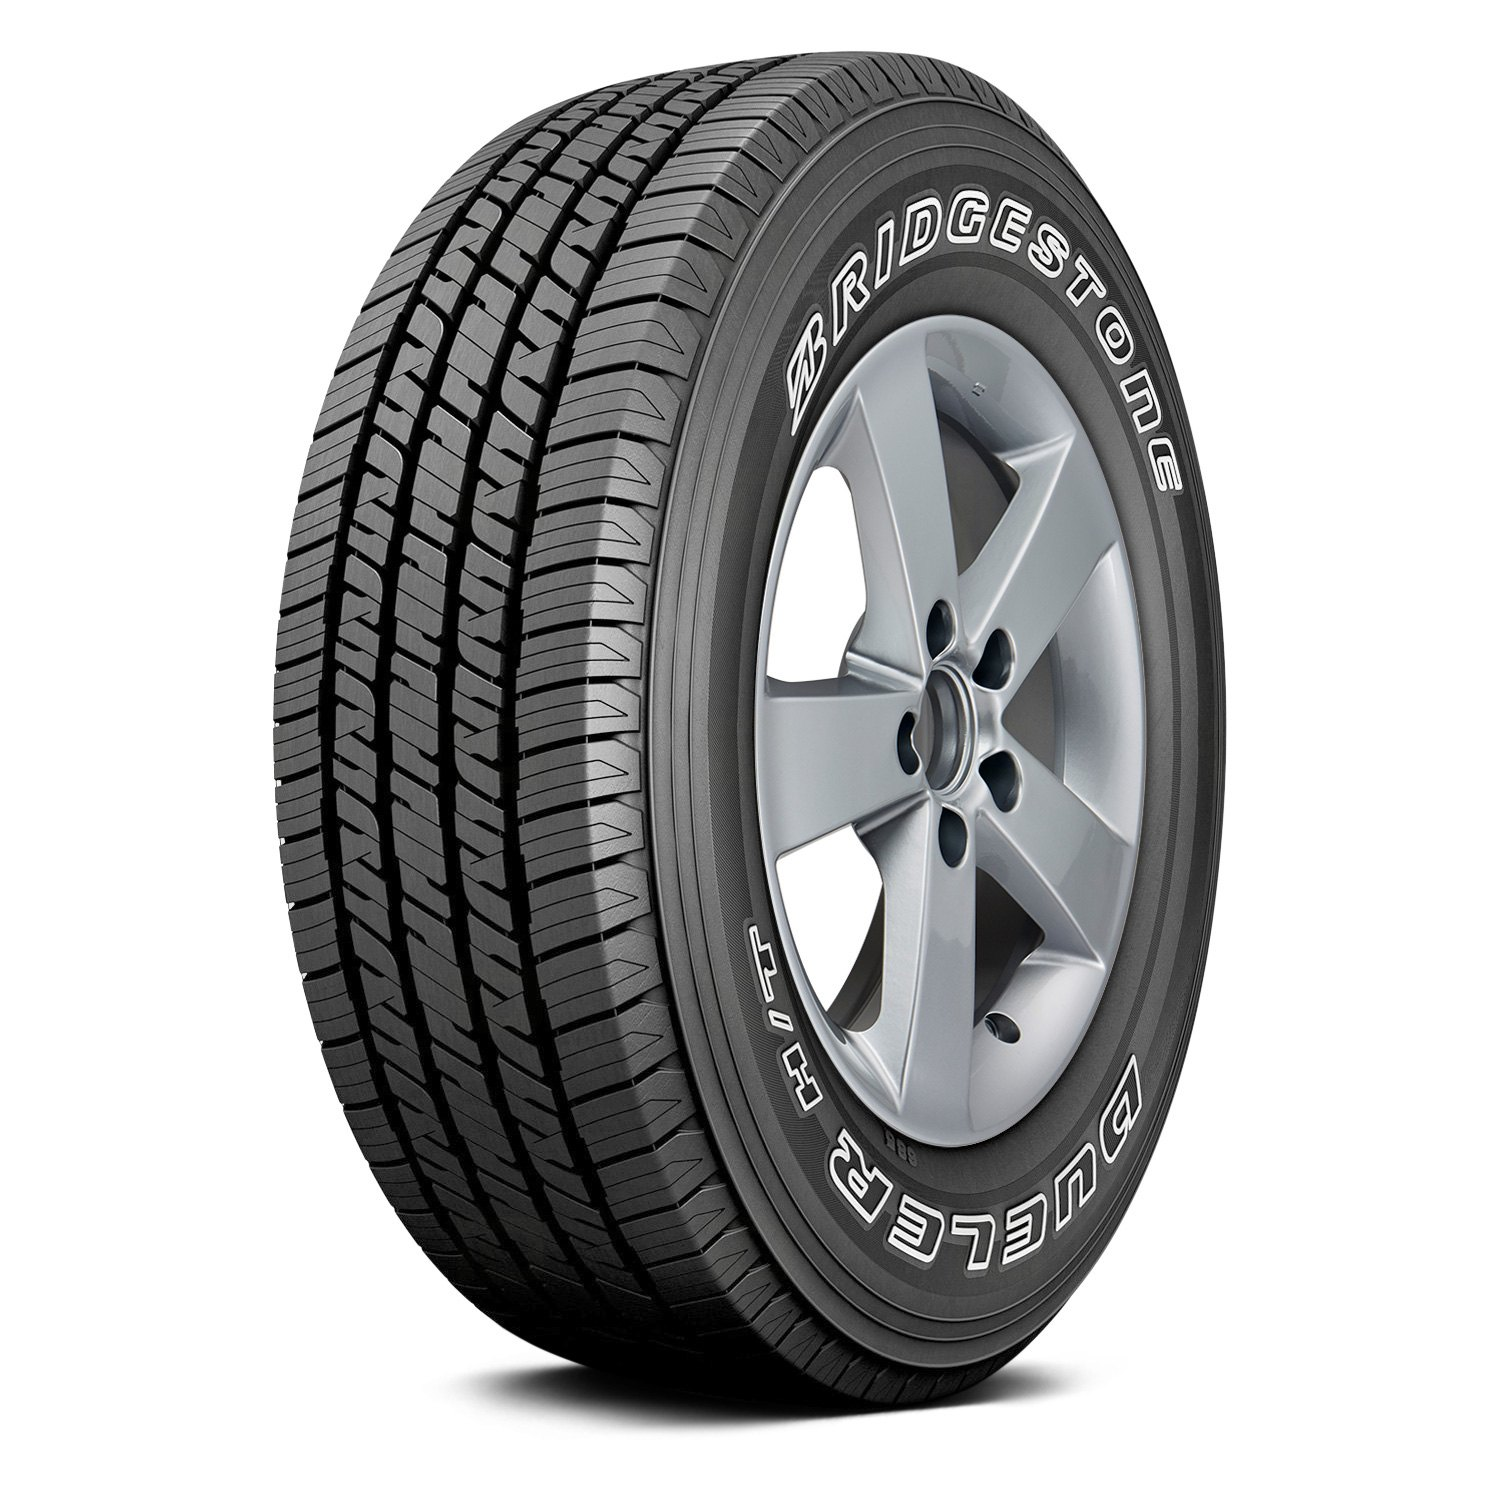 Bridgestone Dueler H T 685 With Outlined White Lettering Tires